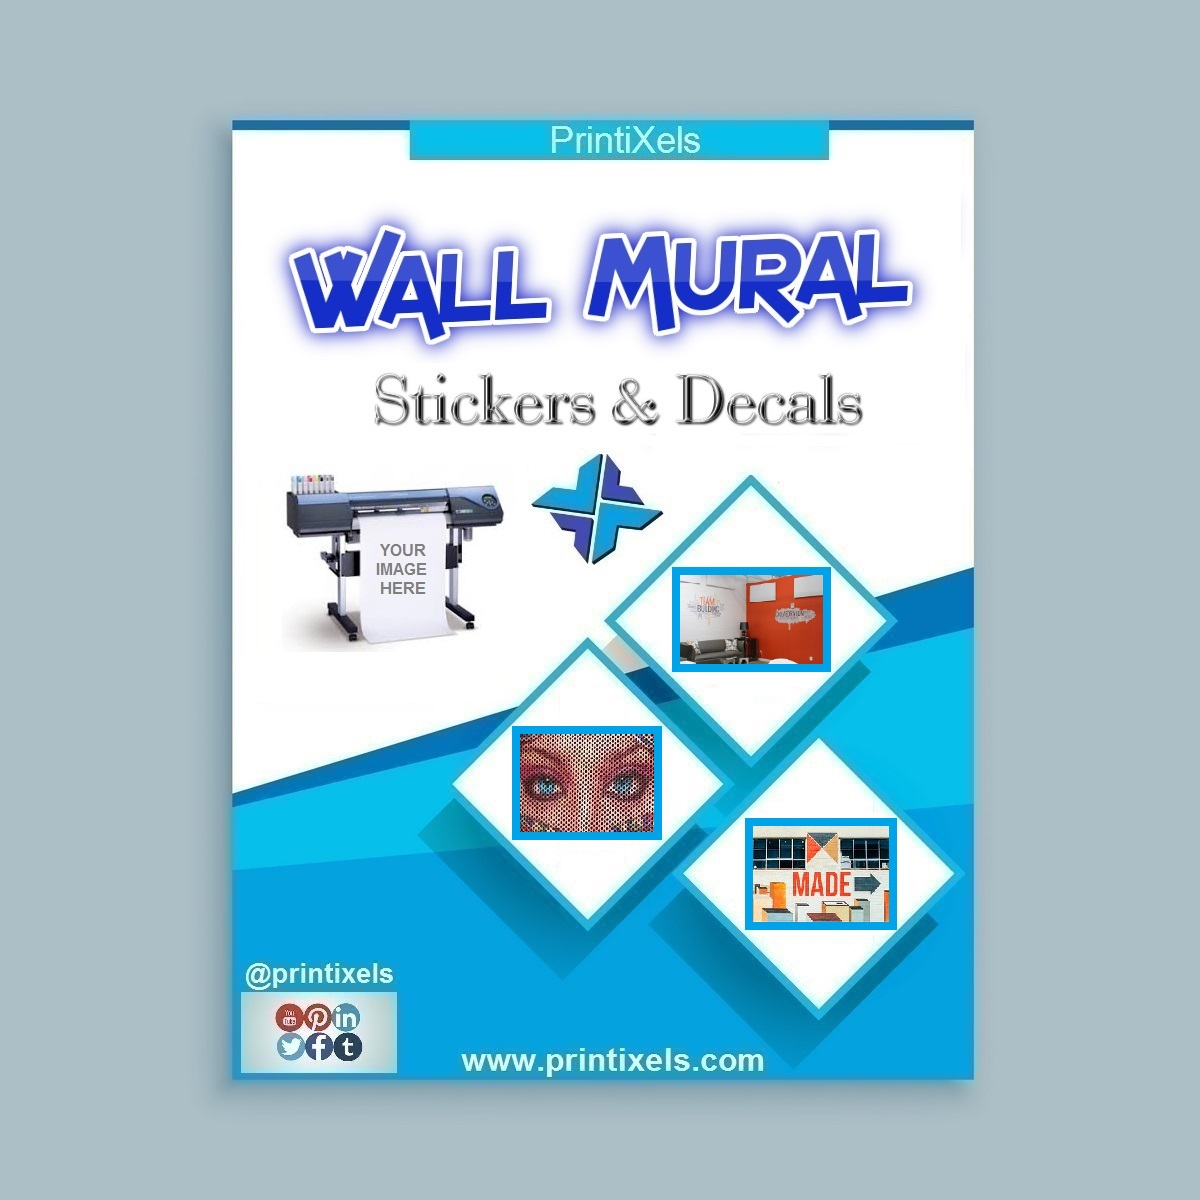 Wall Mural Stickers & Decals - Printing & Installation ...